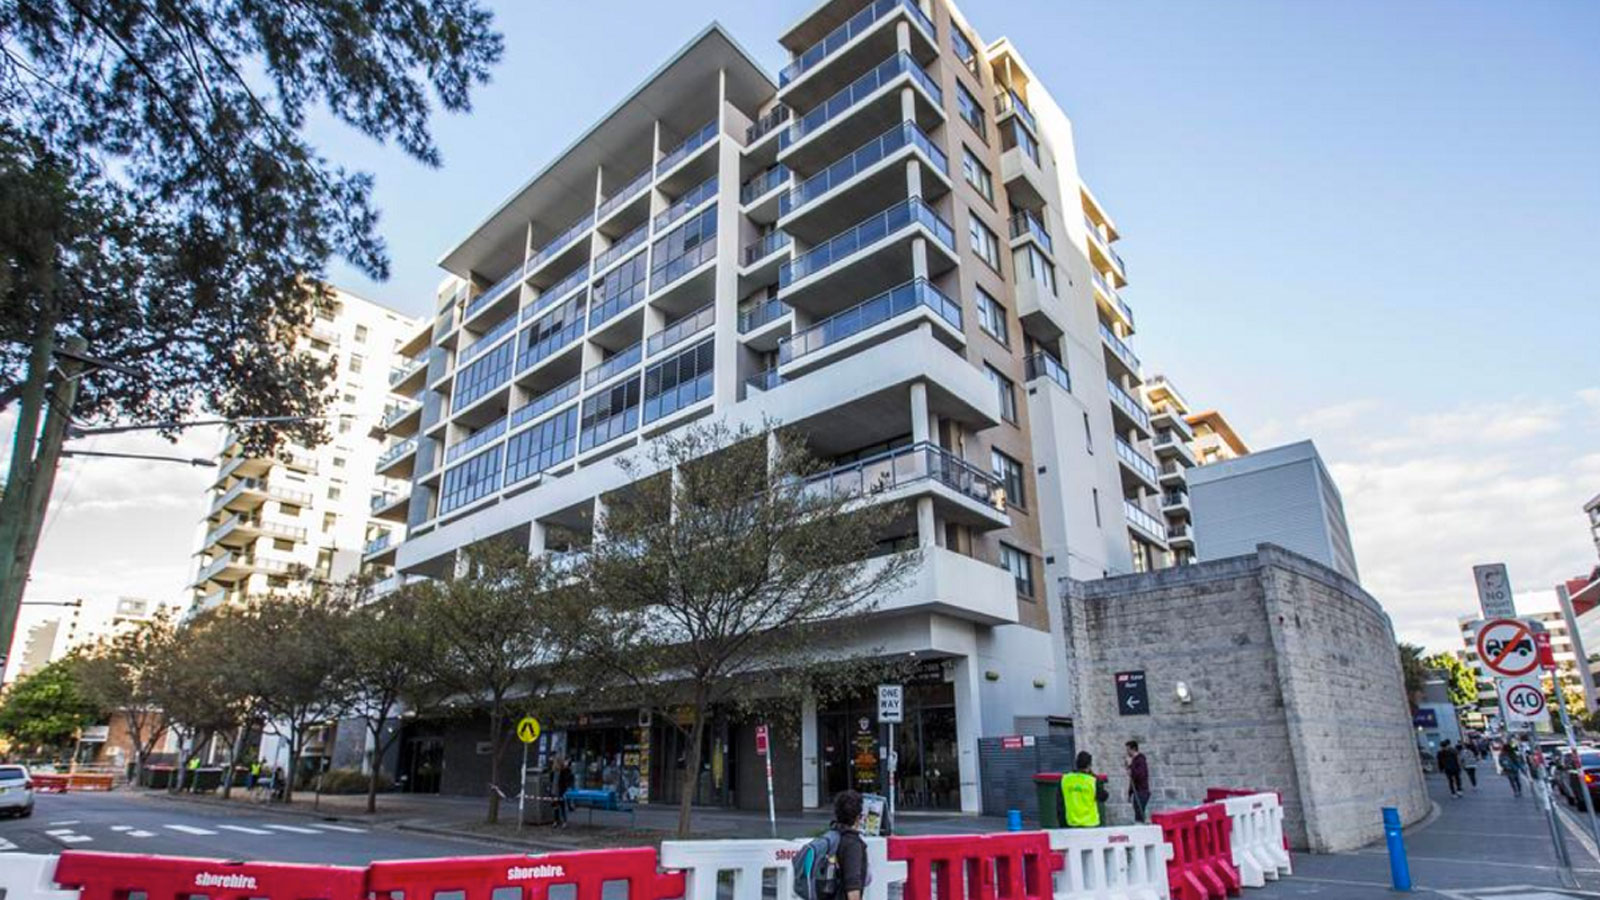 Unlike for all other new homes, there has been no home warranty insurance available for apartment projects over three storeys across Australia for the past 18 years.